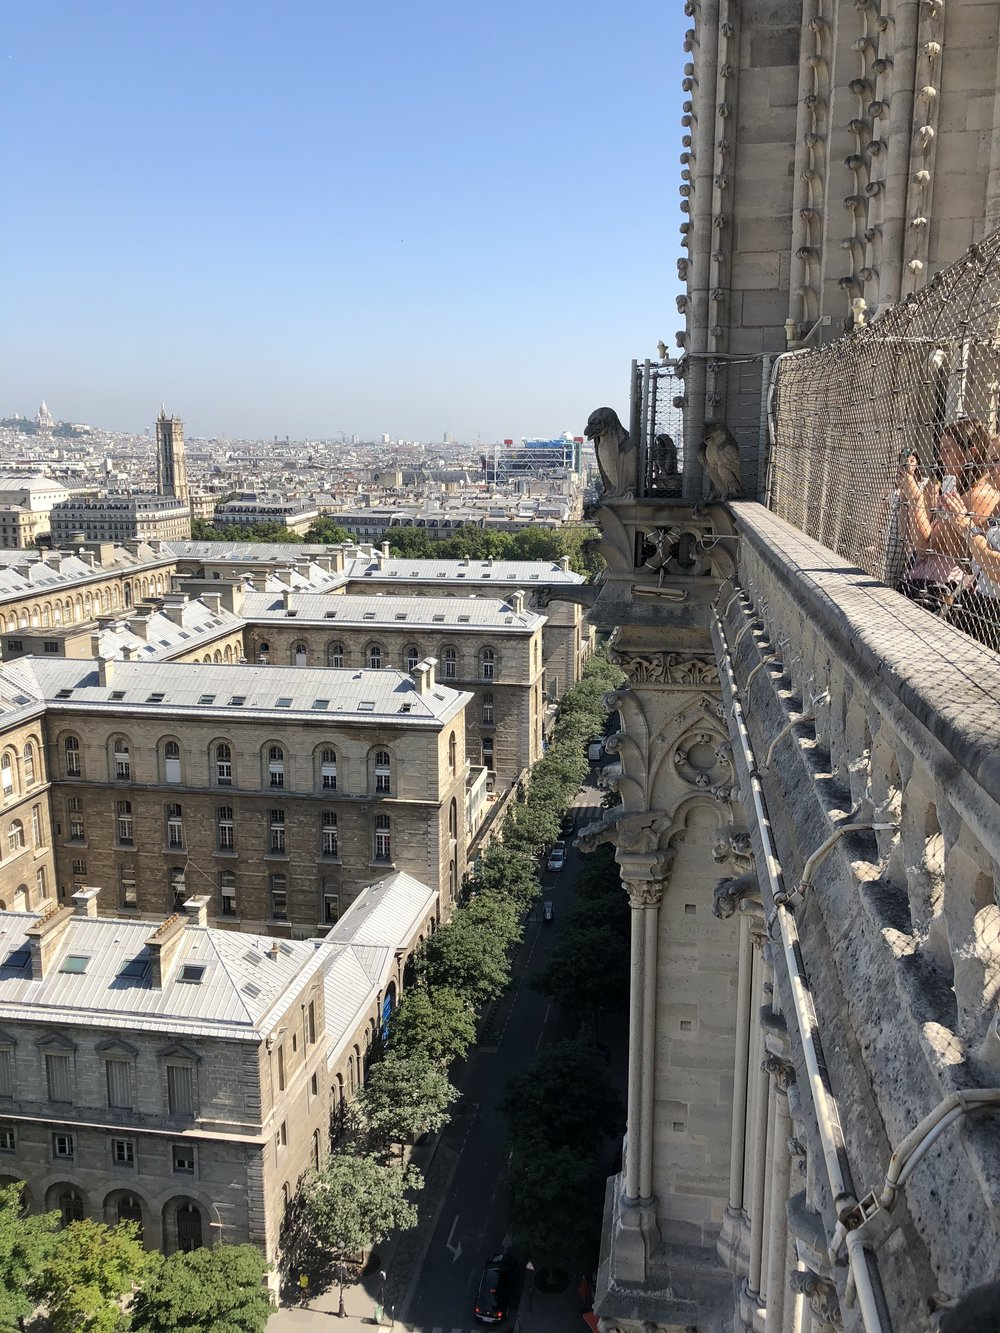 The view from Notre Dame, Paris